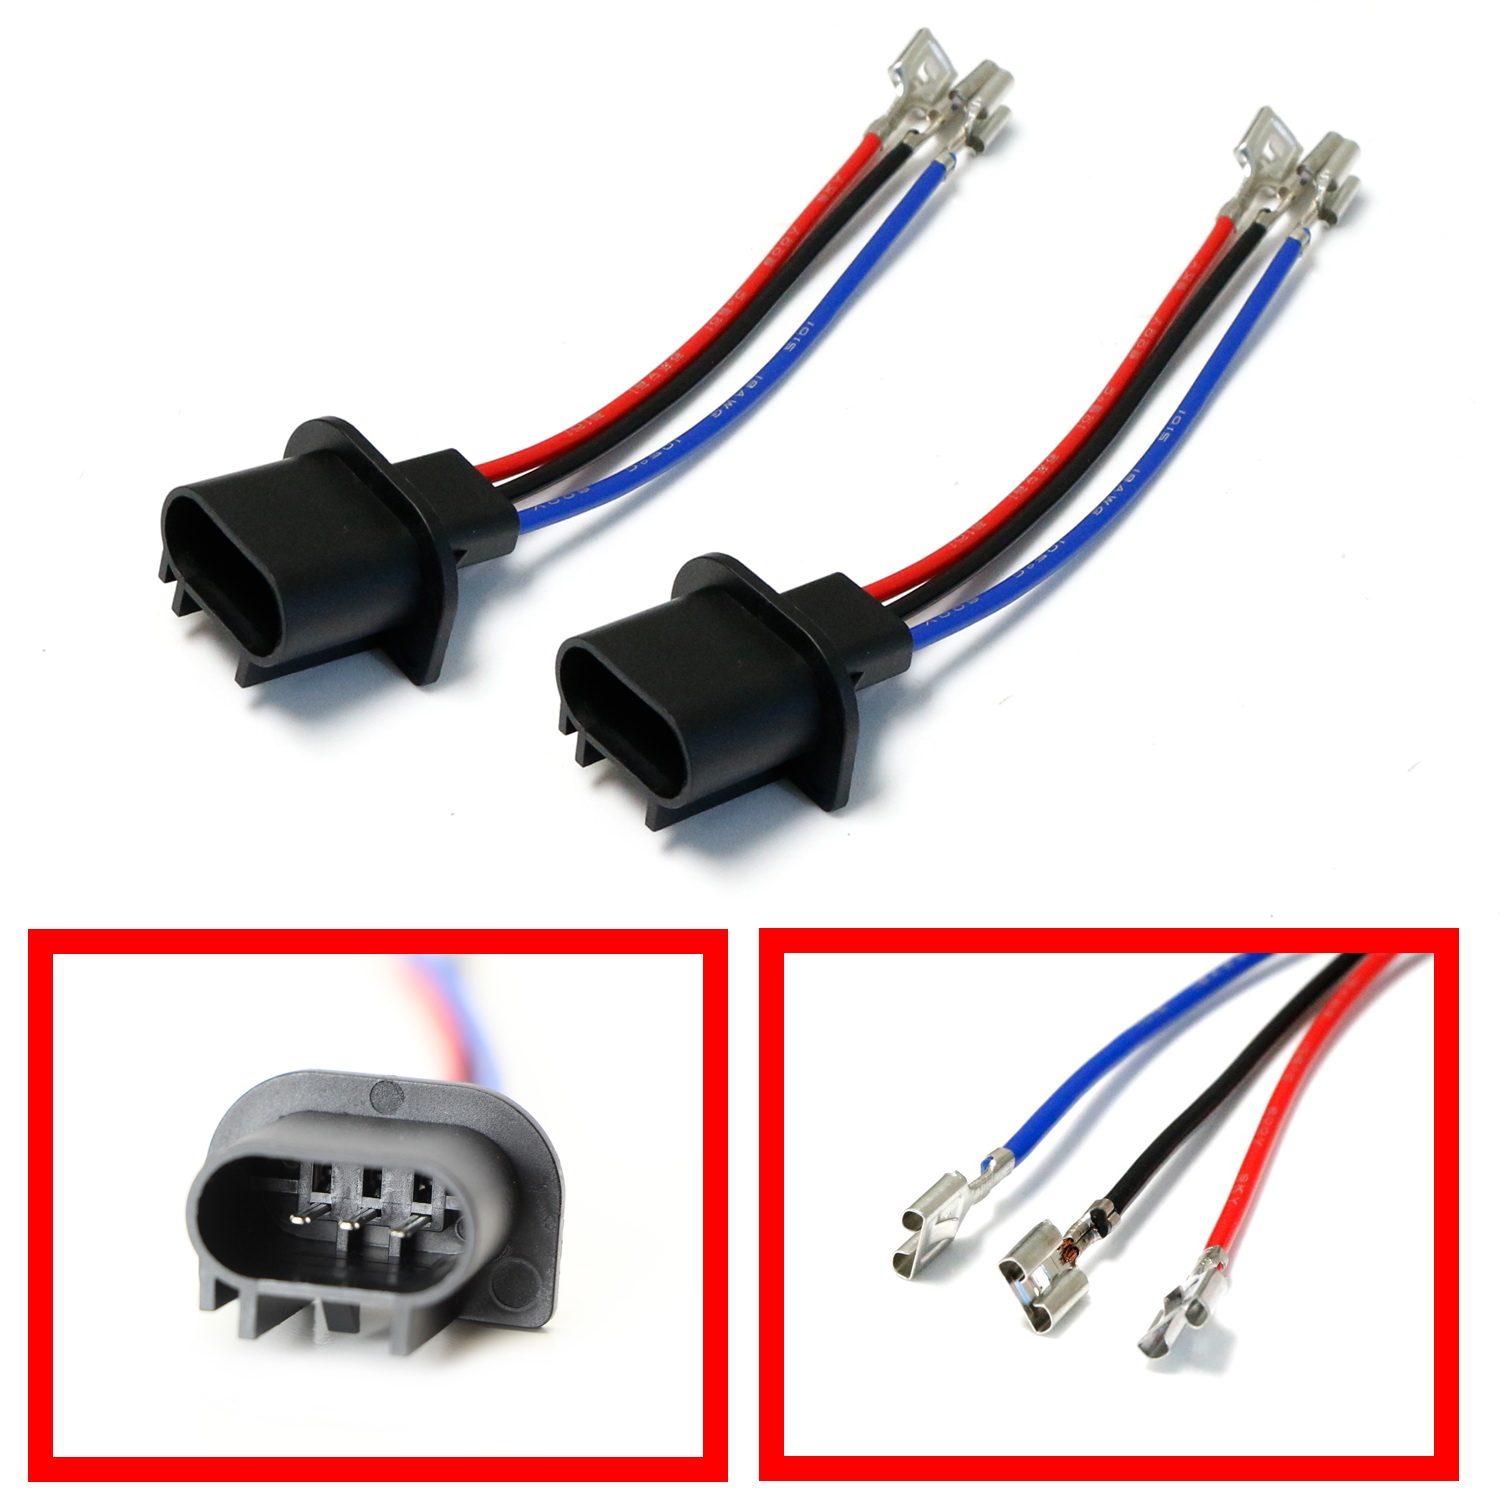 small resolution of ijdmtoy 2 h13 9008 to 9007 9004 or 9003 h4 polarity adjustable 9003 headlight bulb vs h4 h4 vs 9003 wiring